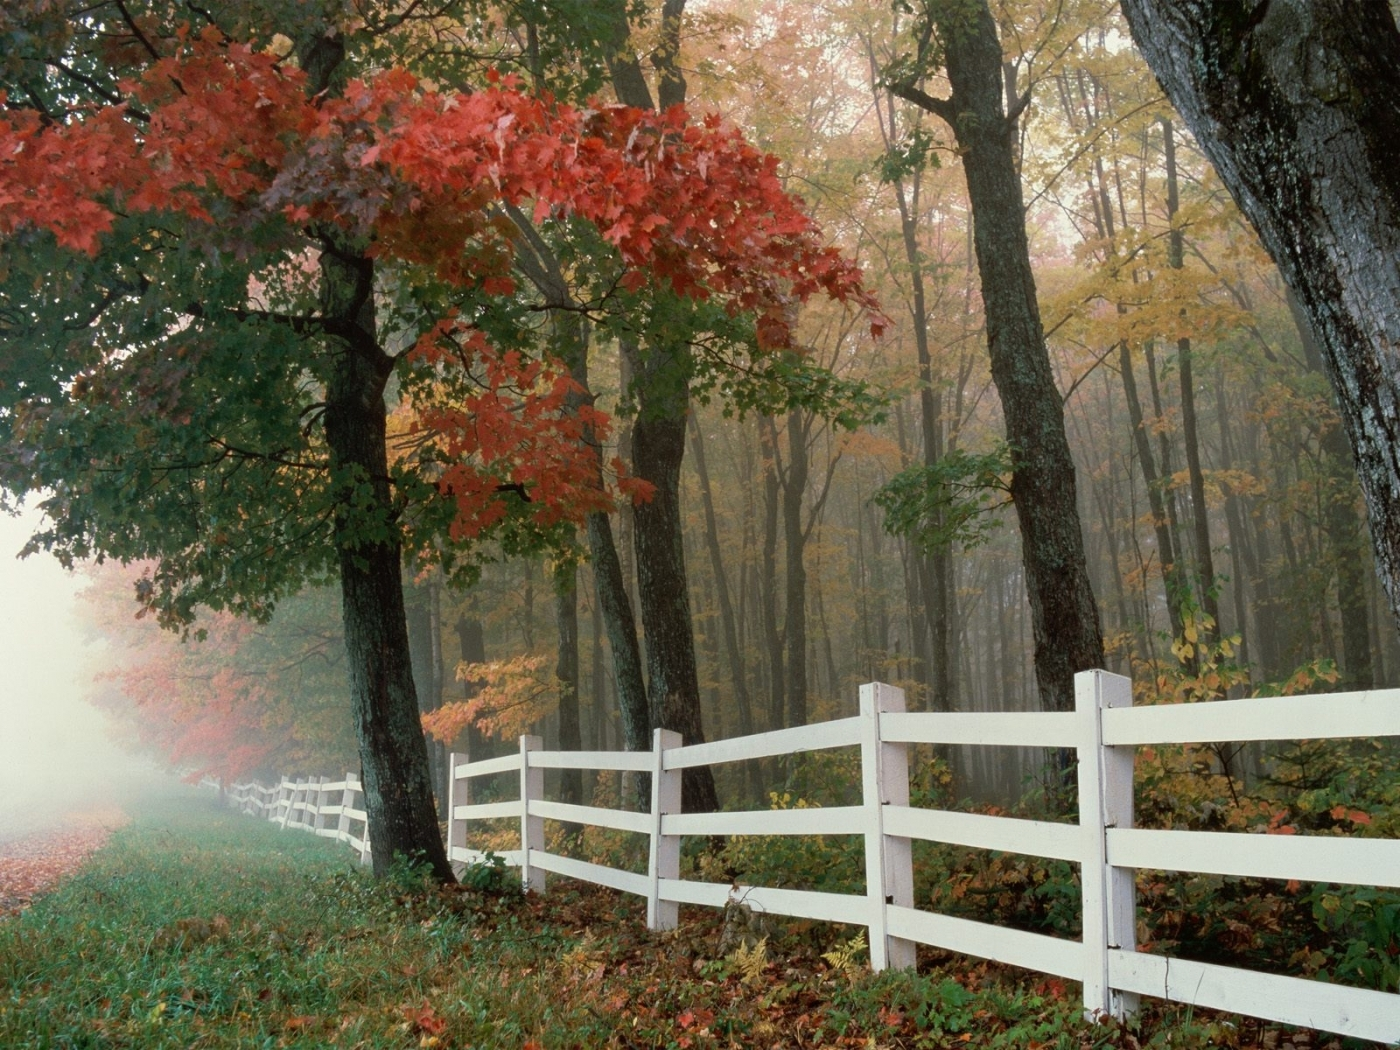 27681 download wallpaper Landscape, Trees, Autumn, Leaves screensavers and pictures for free